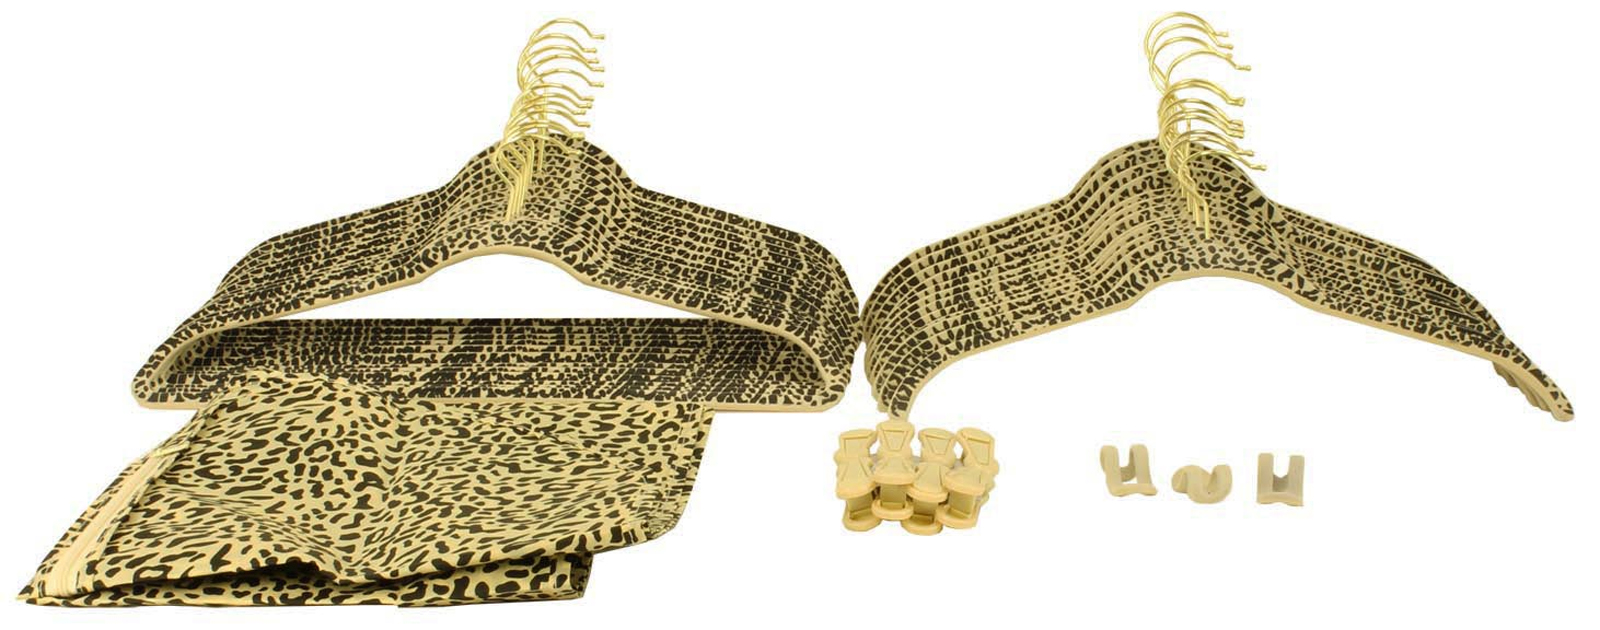 (60) Piece Brass Non-Slip Velvet Soft Hangers & Accessories Set